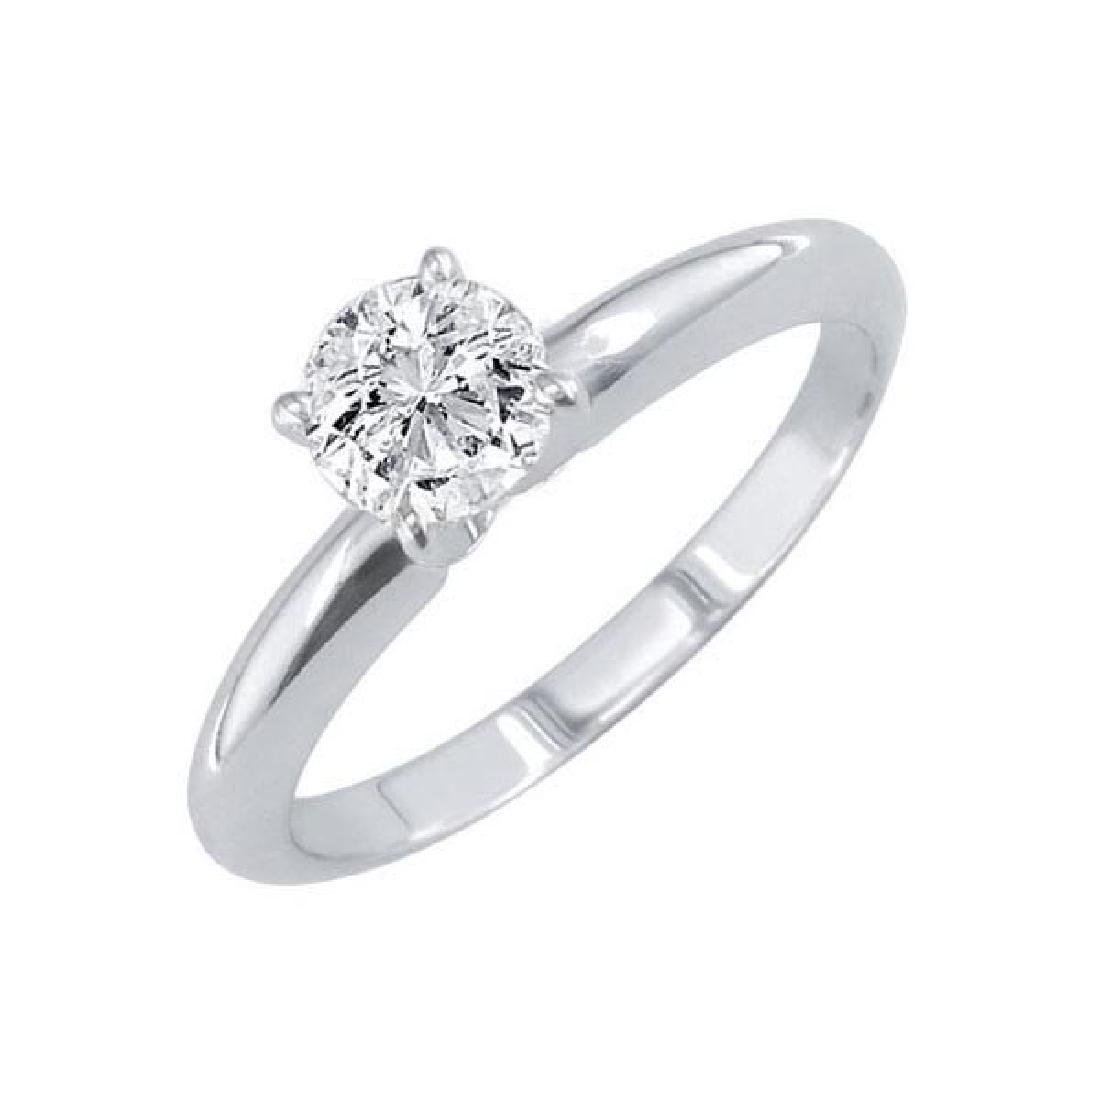 Certified 0.76 CTW Round Diamond Solitaire 14k Ring G/S